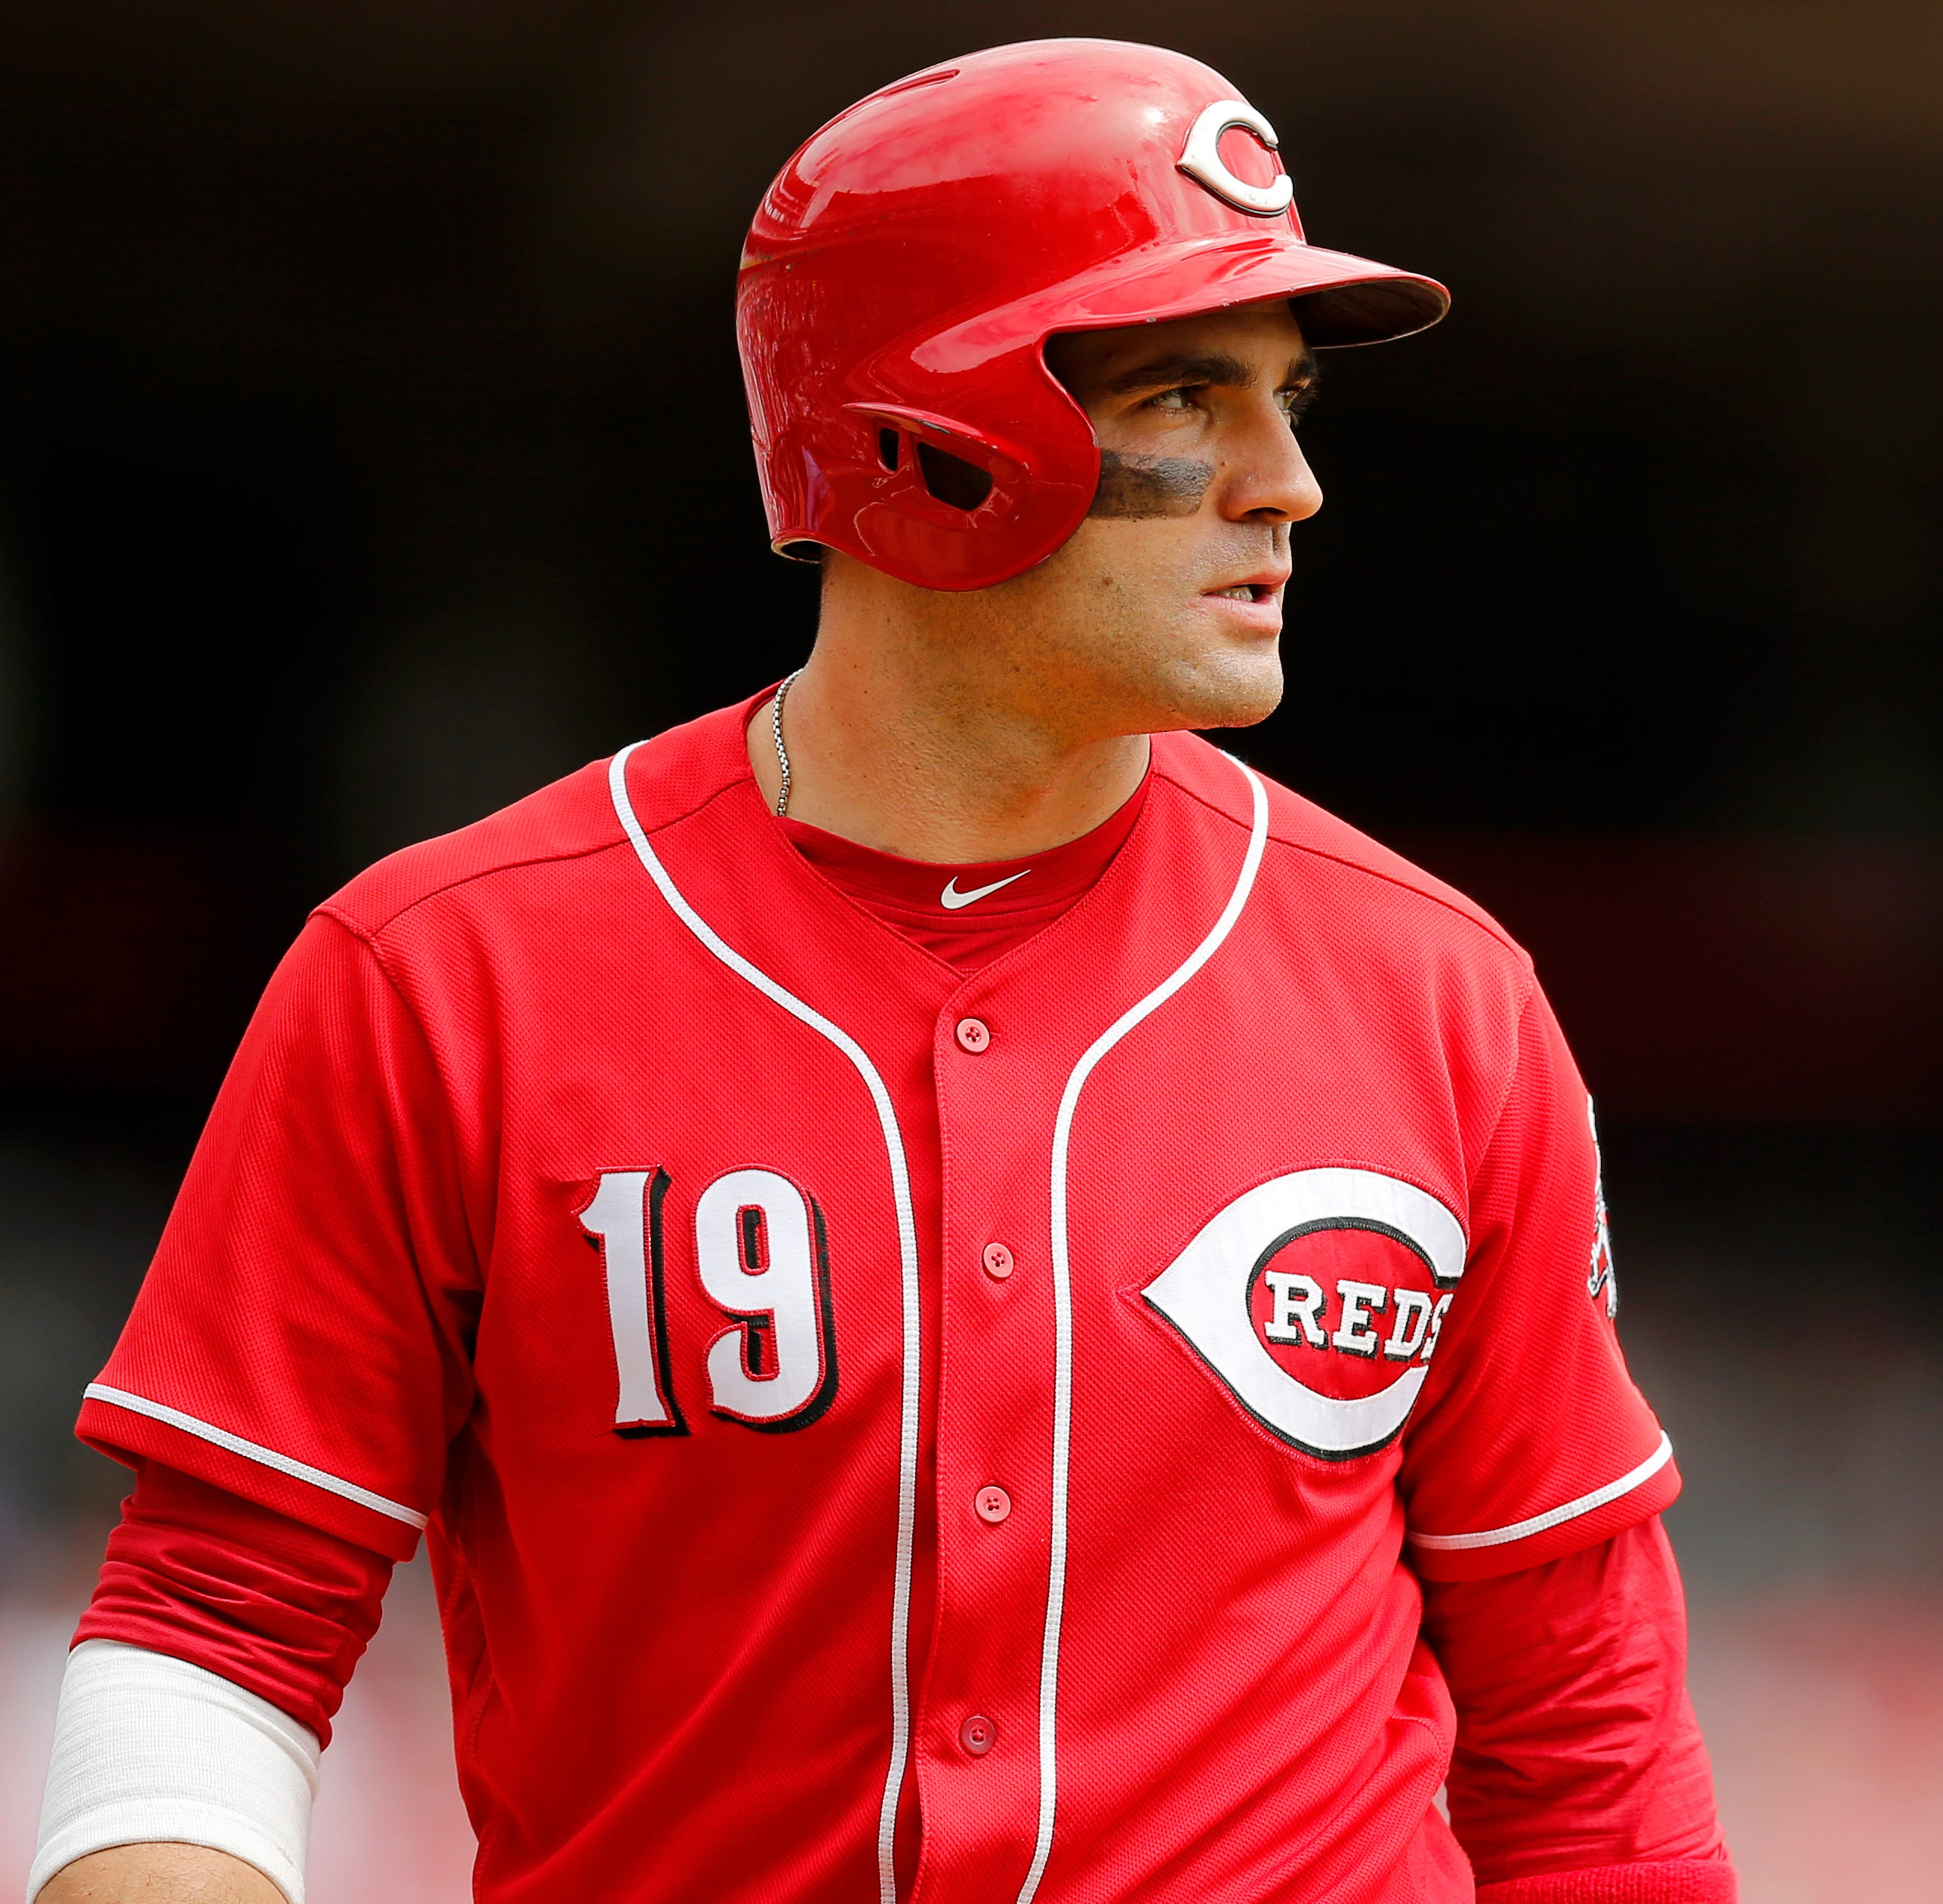 Cincinnati Reds star Joey Votto says he's 'proud' of Bryce Harper and Manny Machado for standing ground with contracts